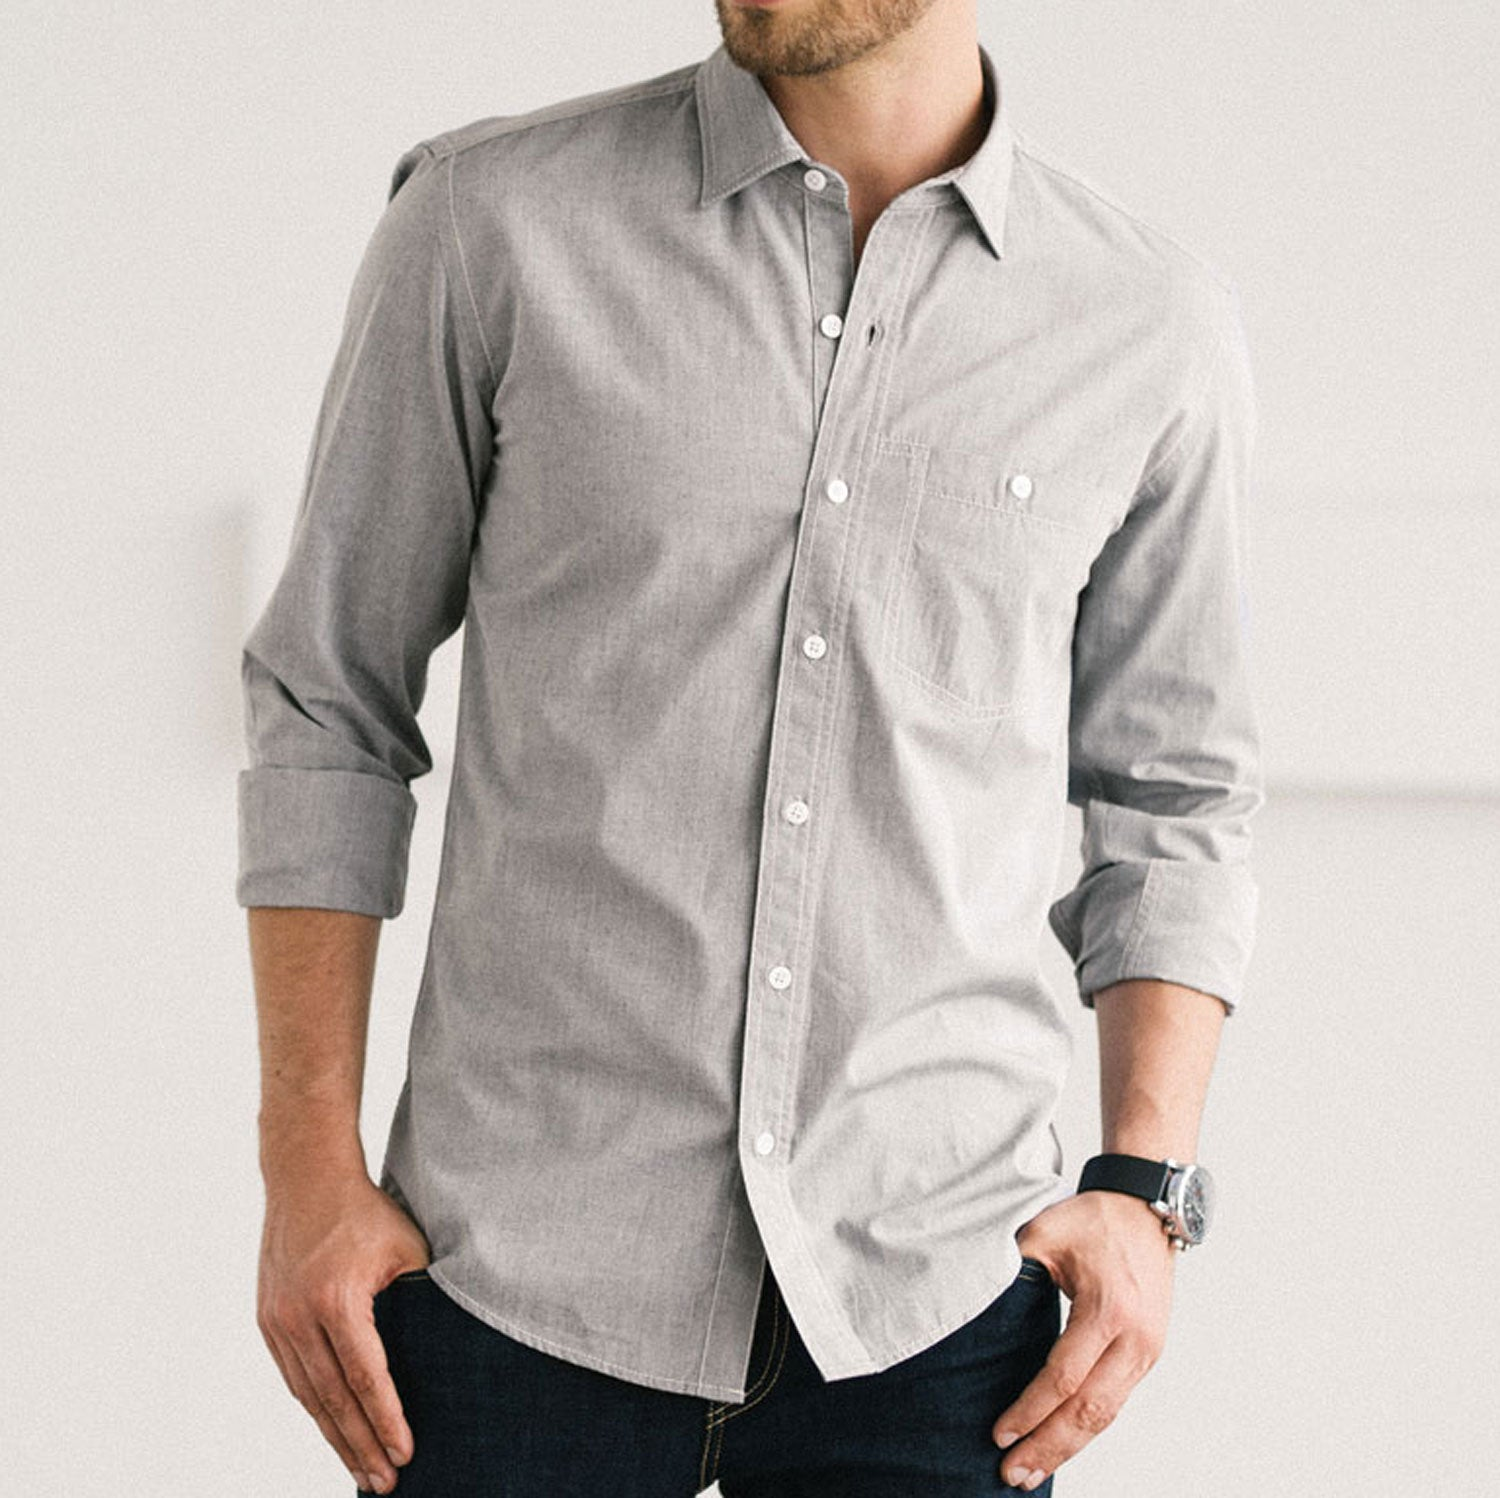 Spread Collar Shirt Image